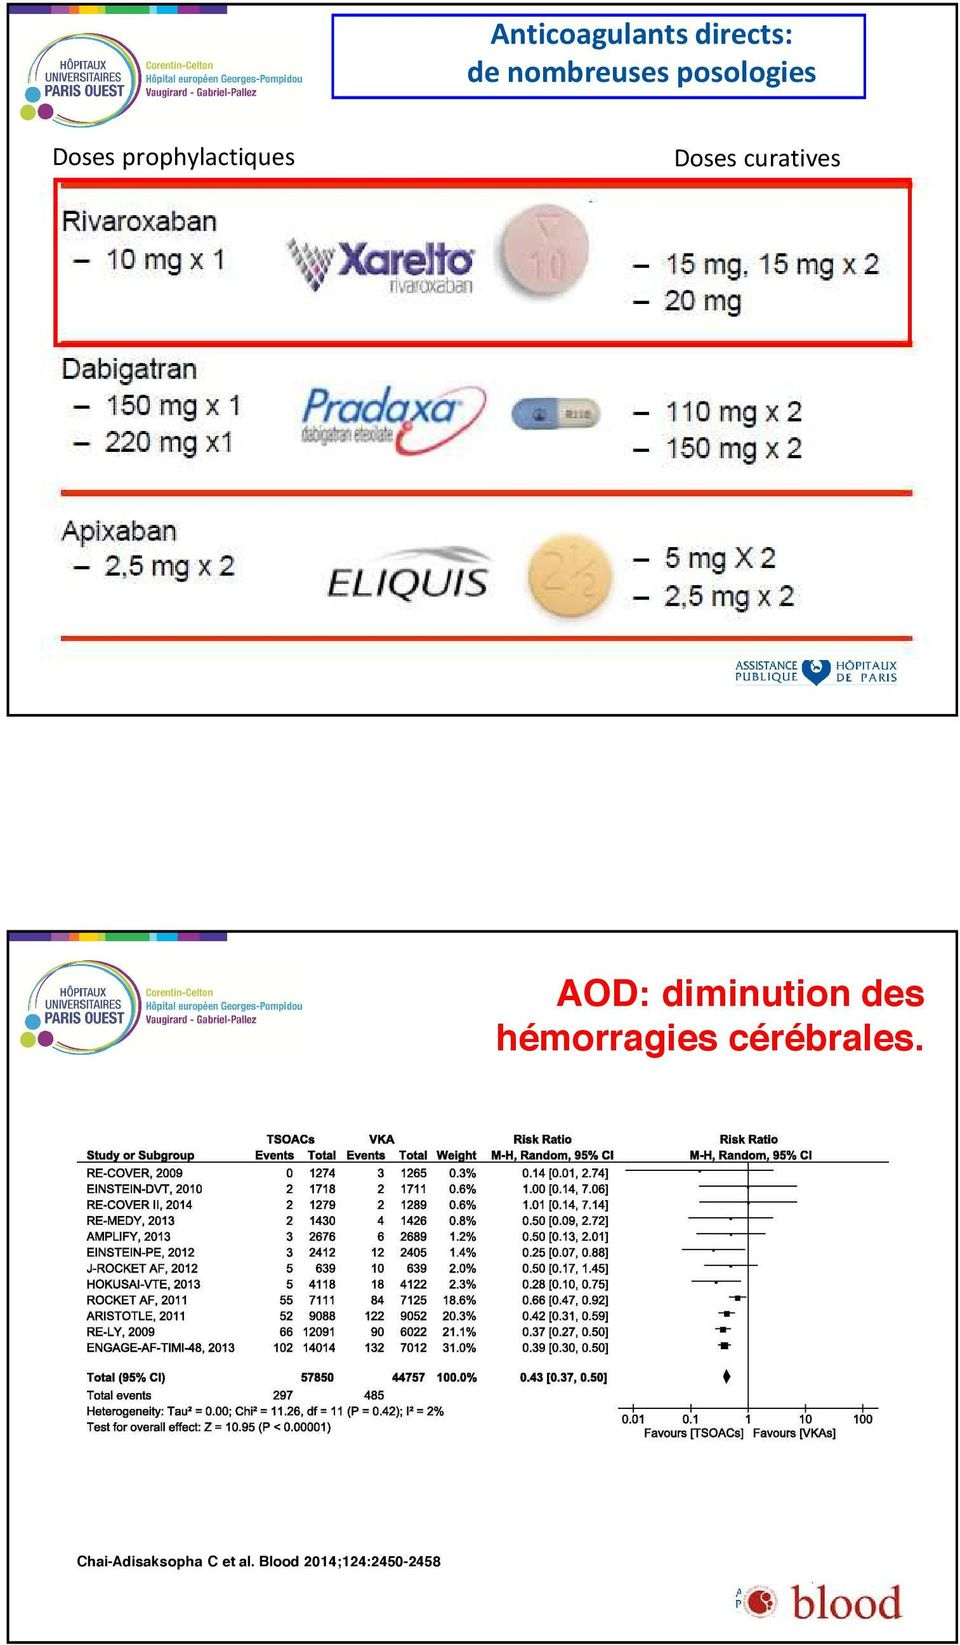 curatives AOD: diminution des hémorragies